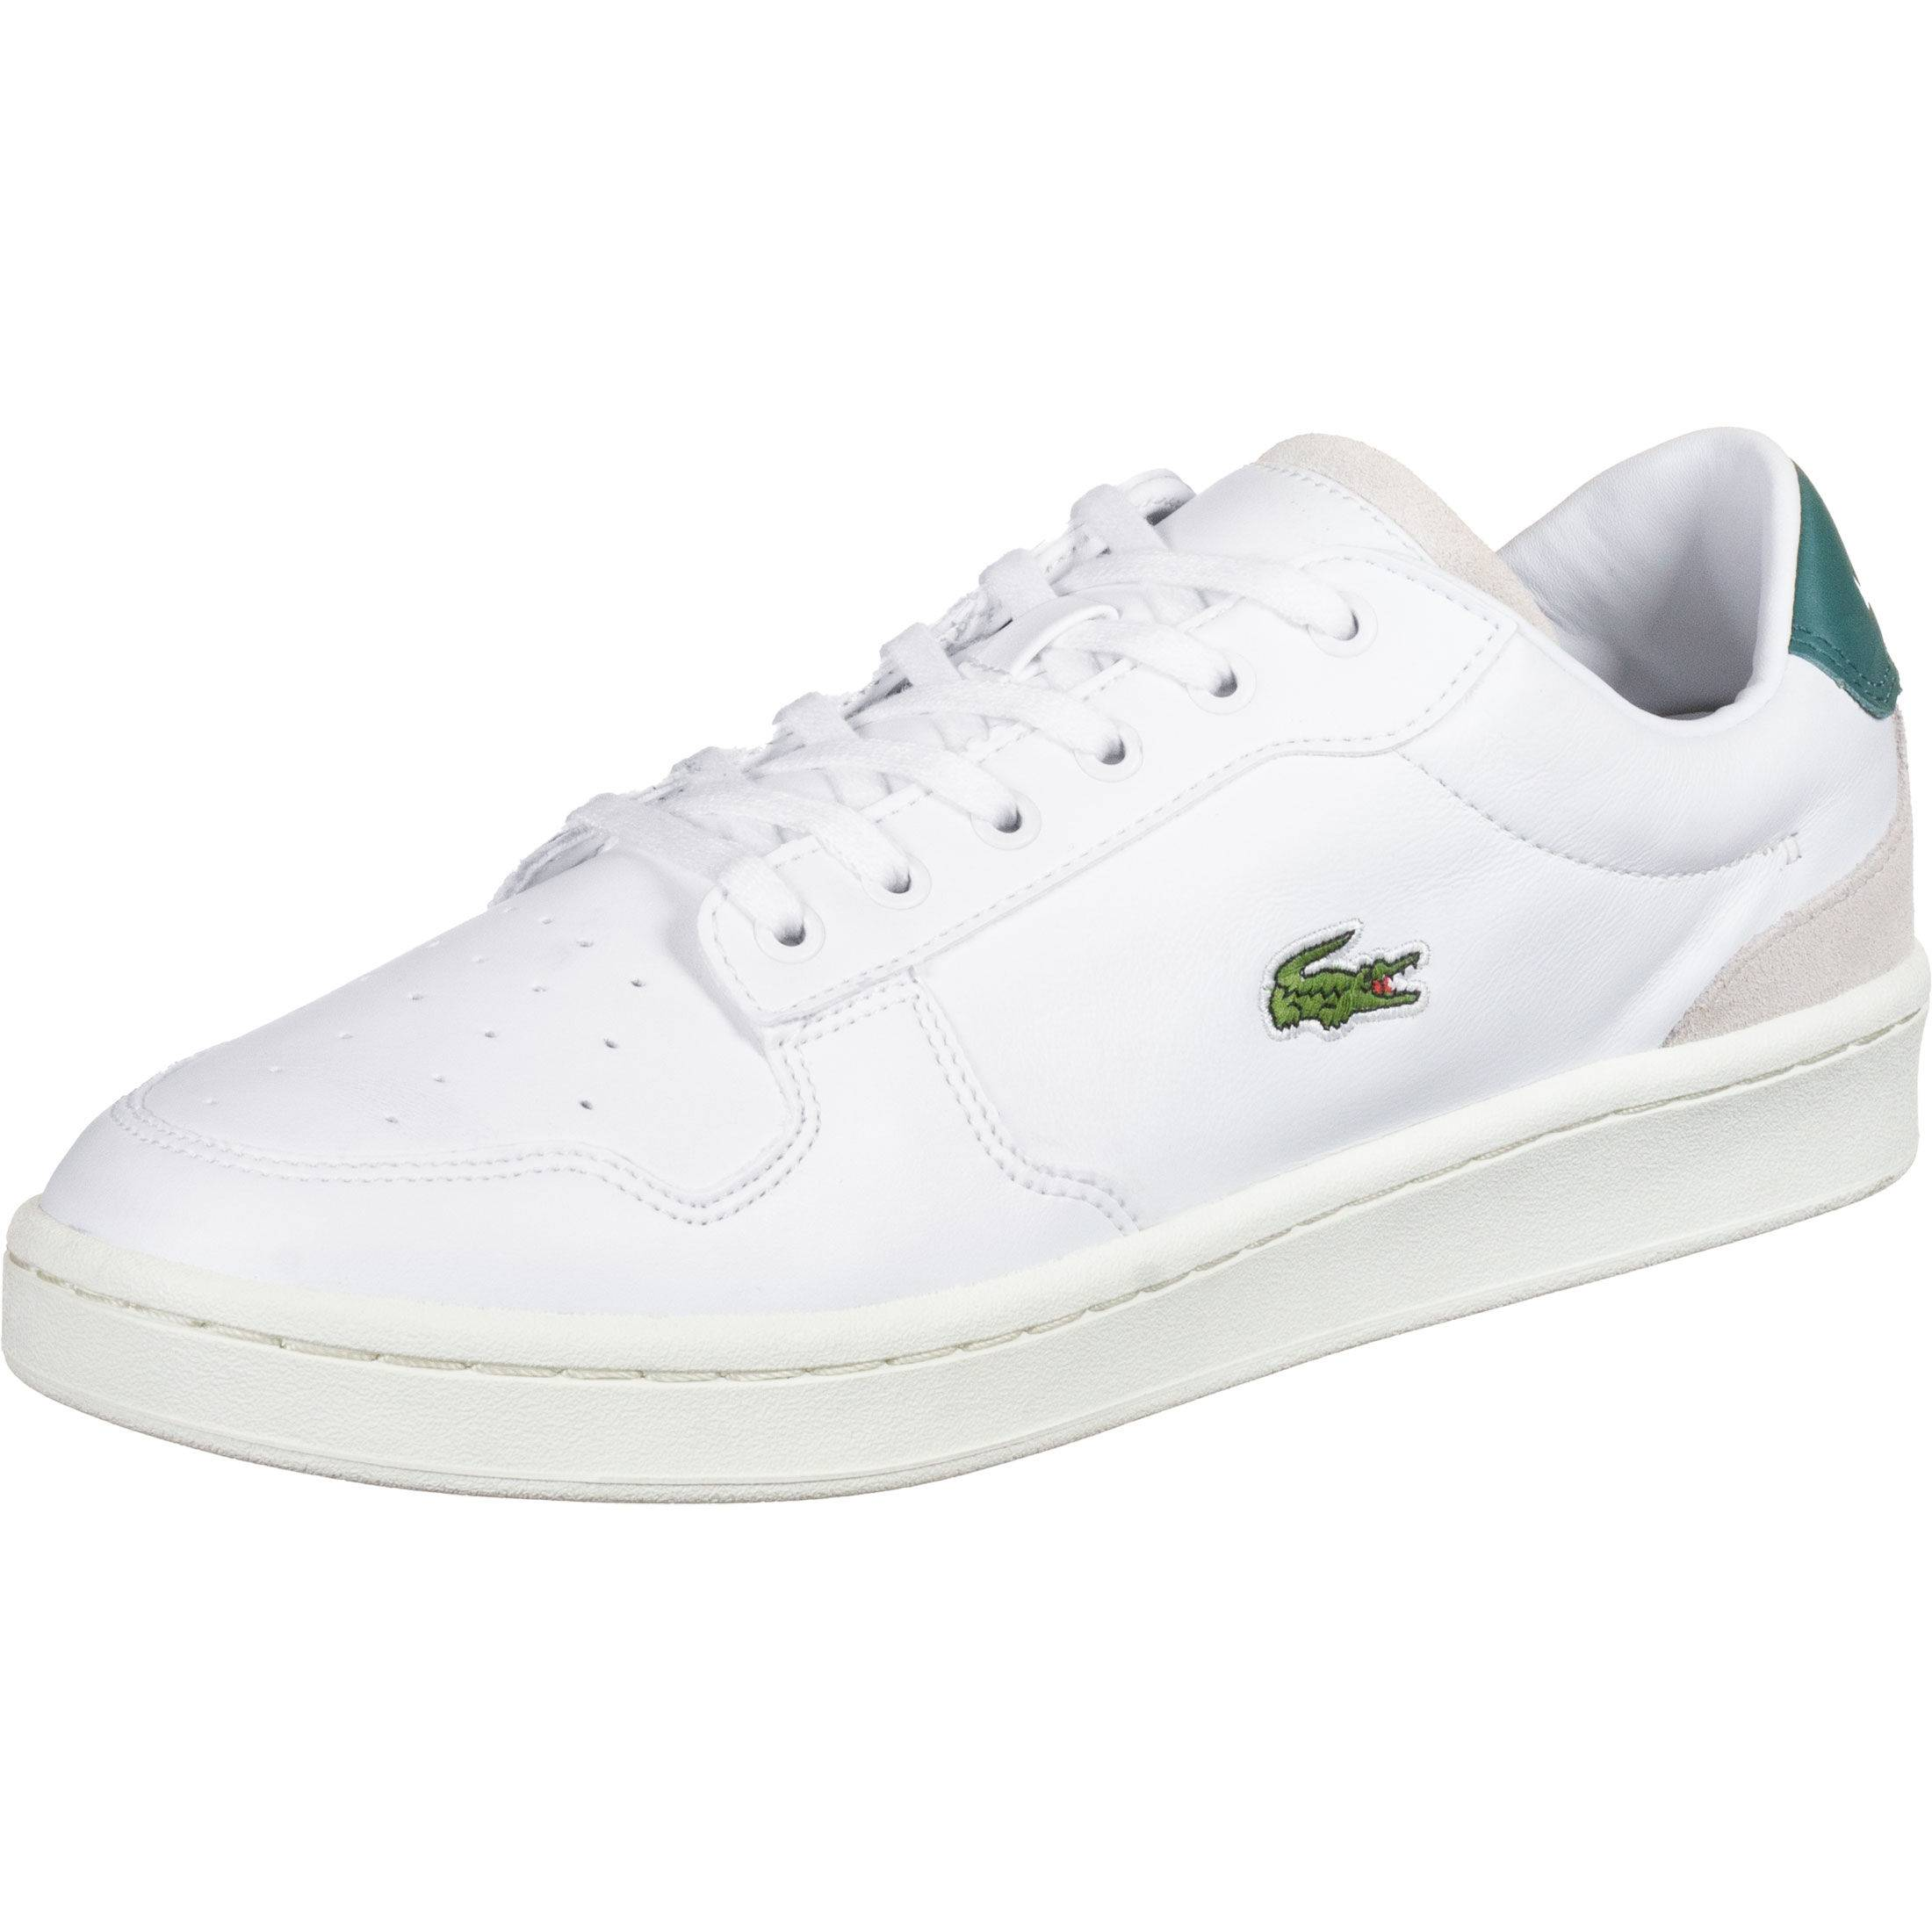 Lacoste Masters Cup, 45 EU, homme, blanc